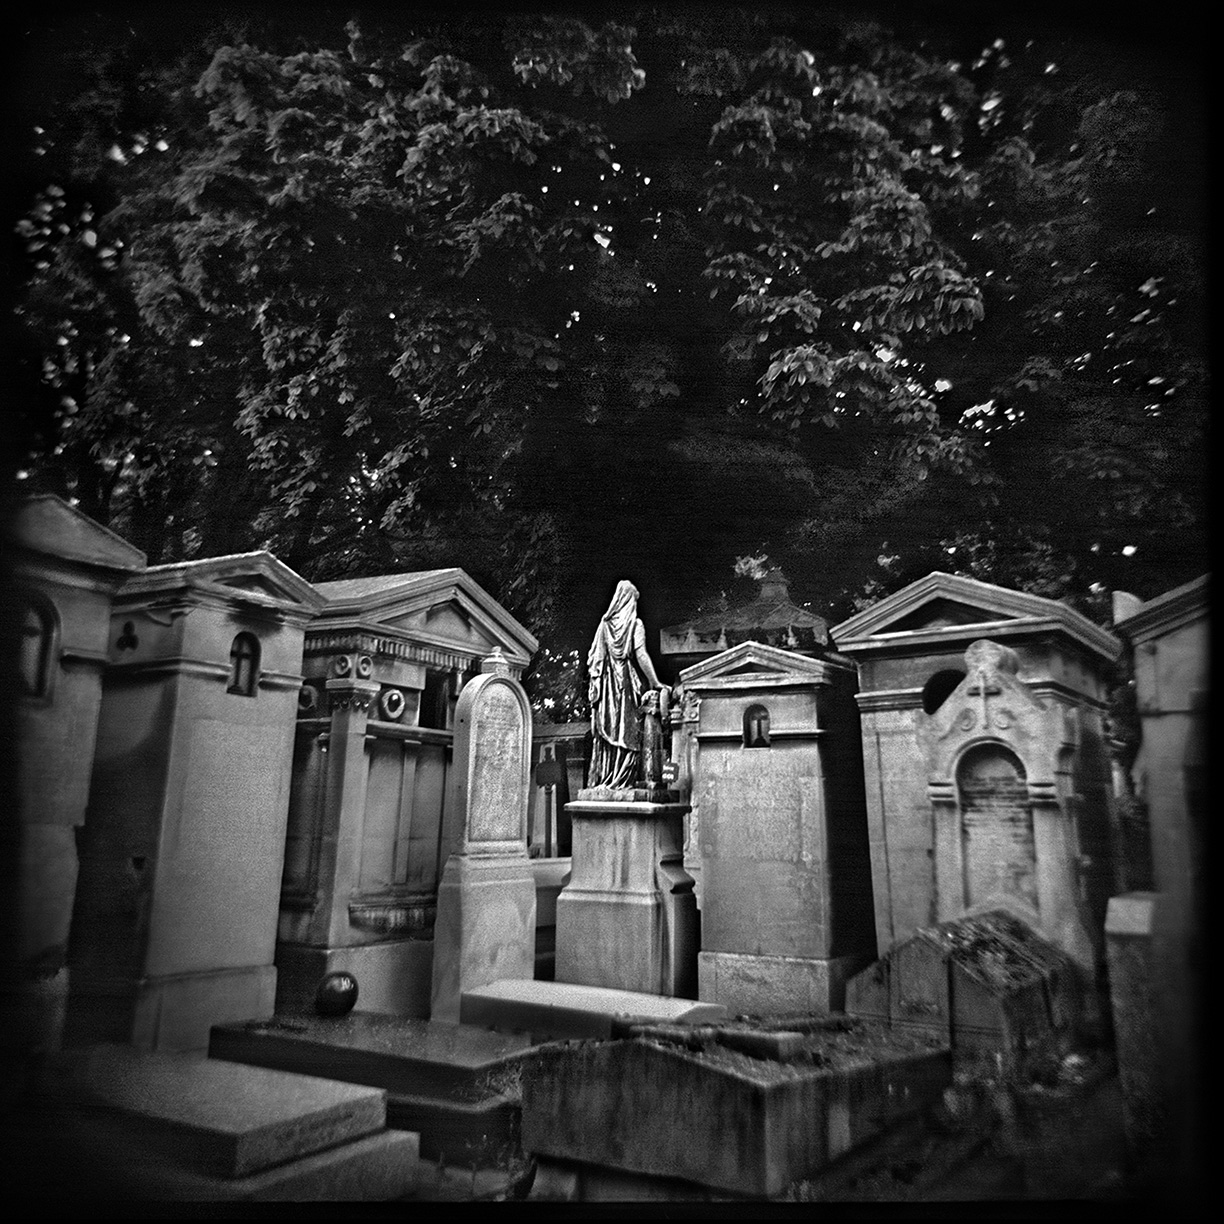 22-Cemeteries-Website-Nov2015